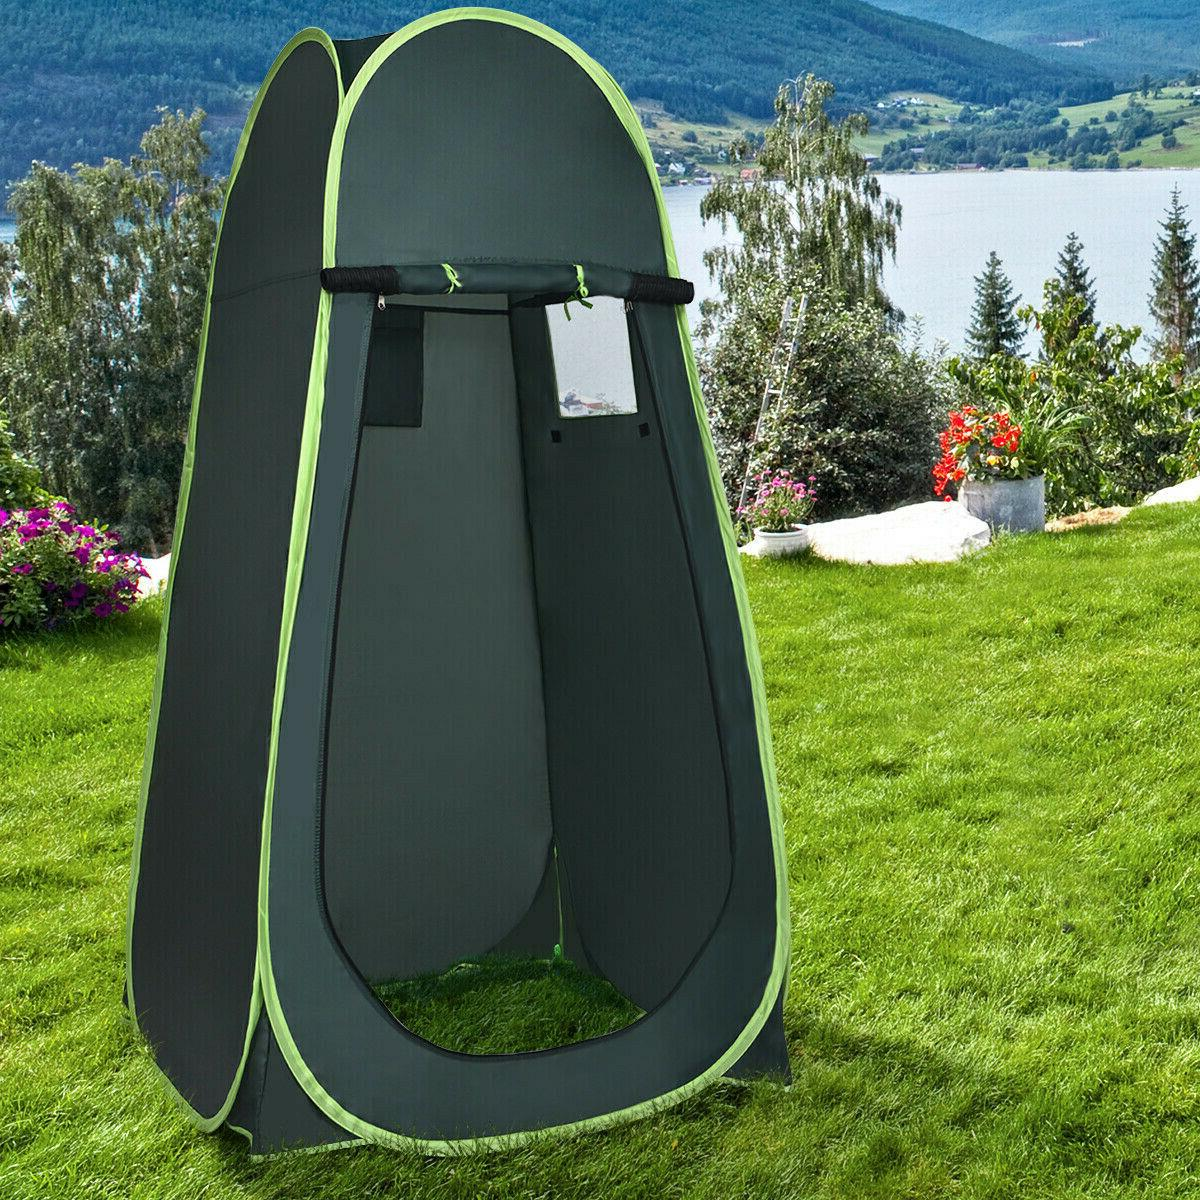 Portable Green Outdoor Up Camping Privacy